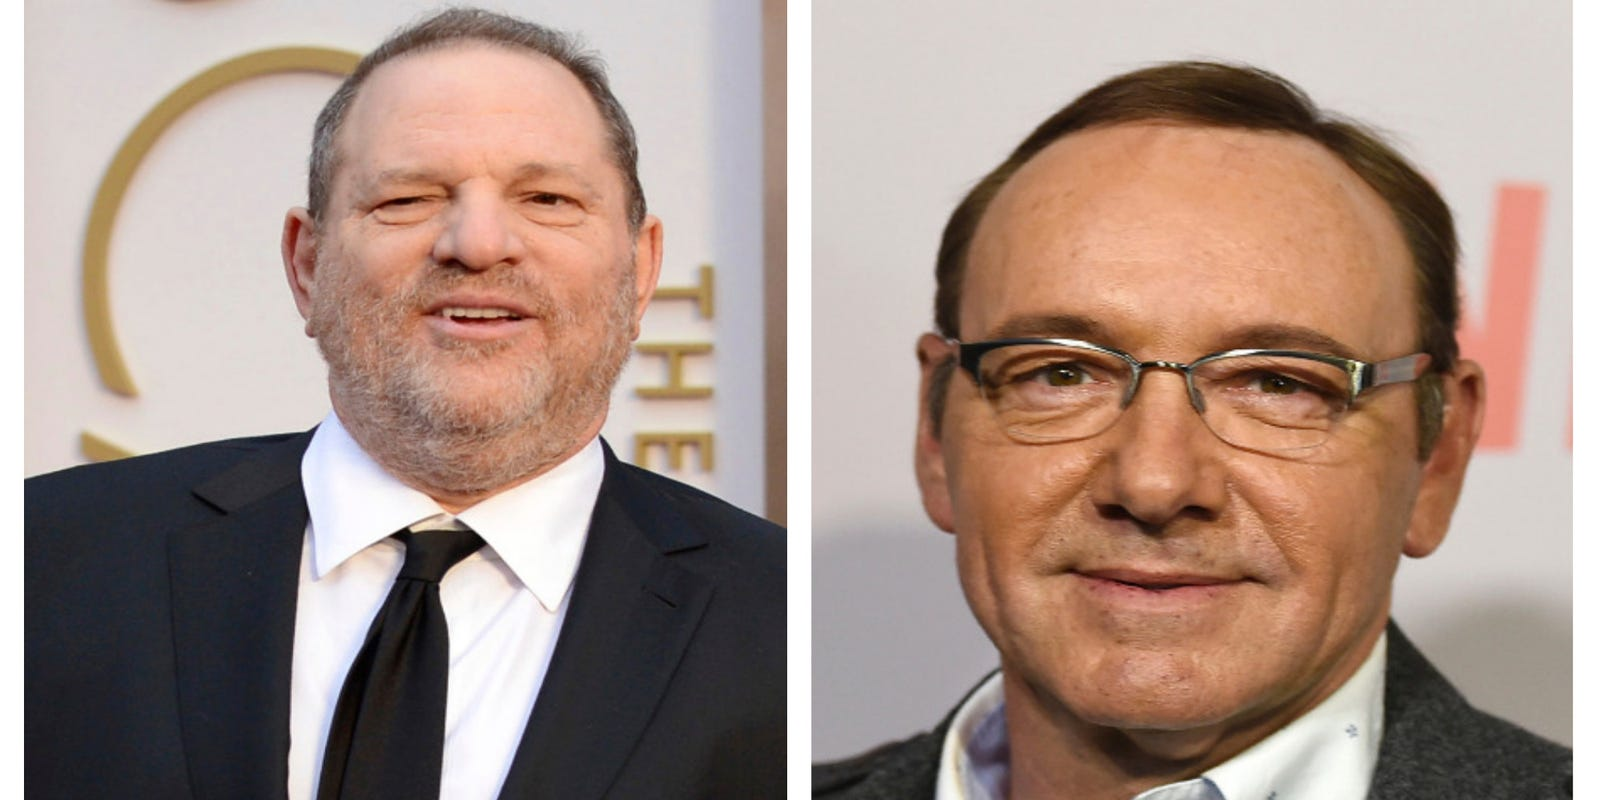 Actric Porno 2017 Laura Love Porno Espain what does 'treatment' for harvey weinstein, kevin spacey entail?